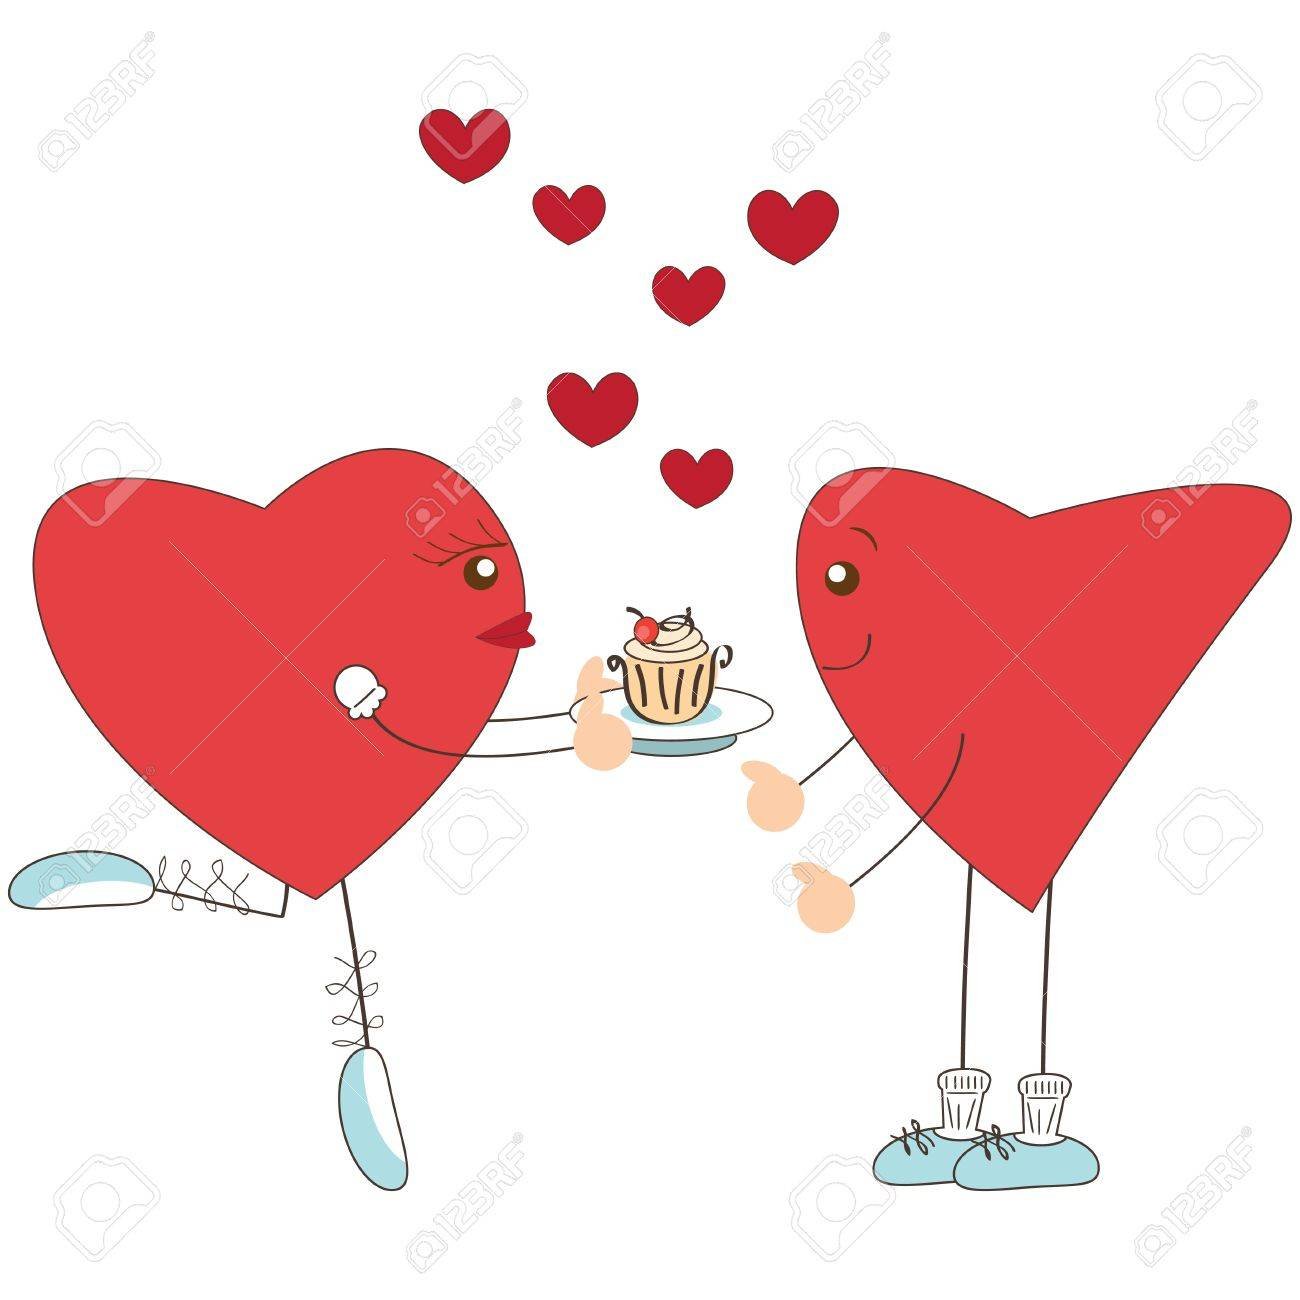 Valentine day greeting. Cute heart girl present cake to heart boy Stock Vector - 17345240